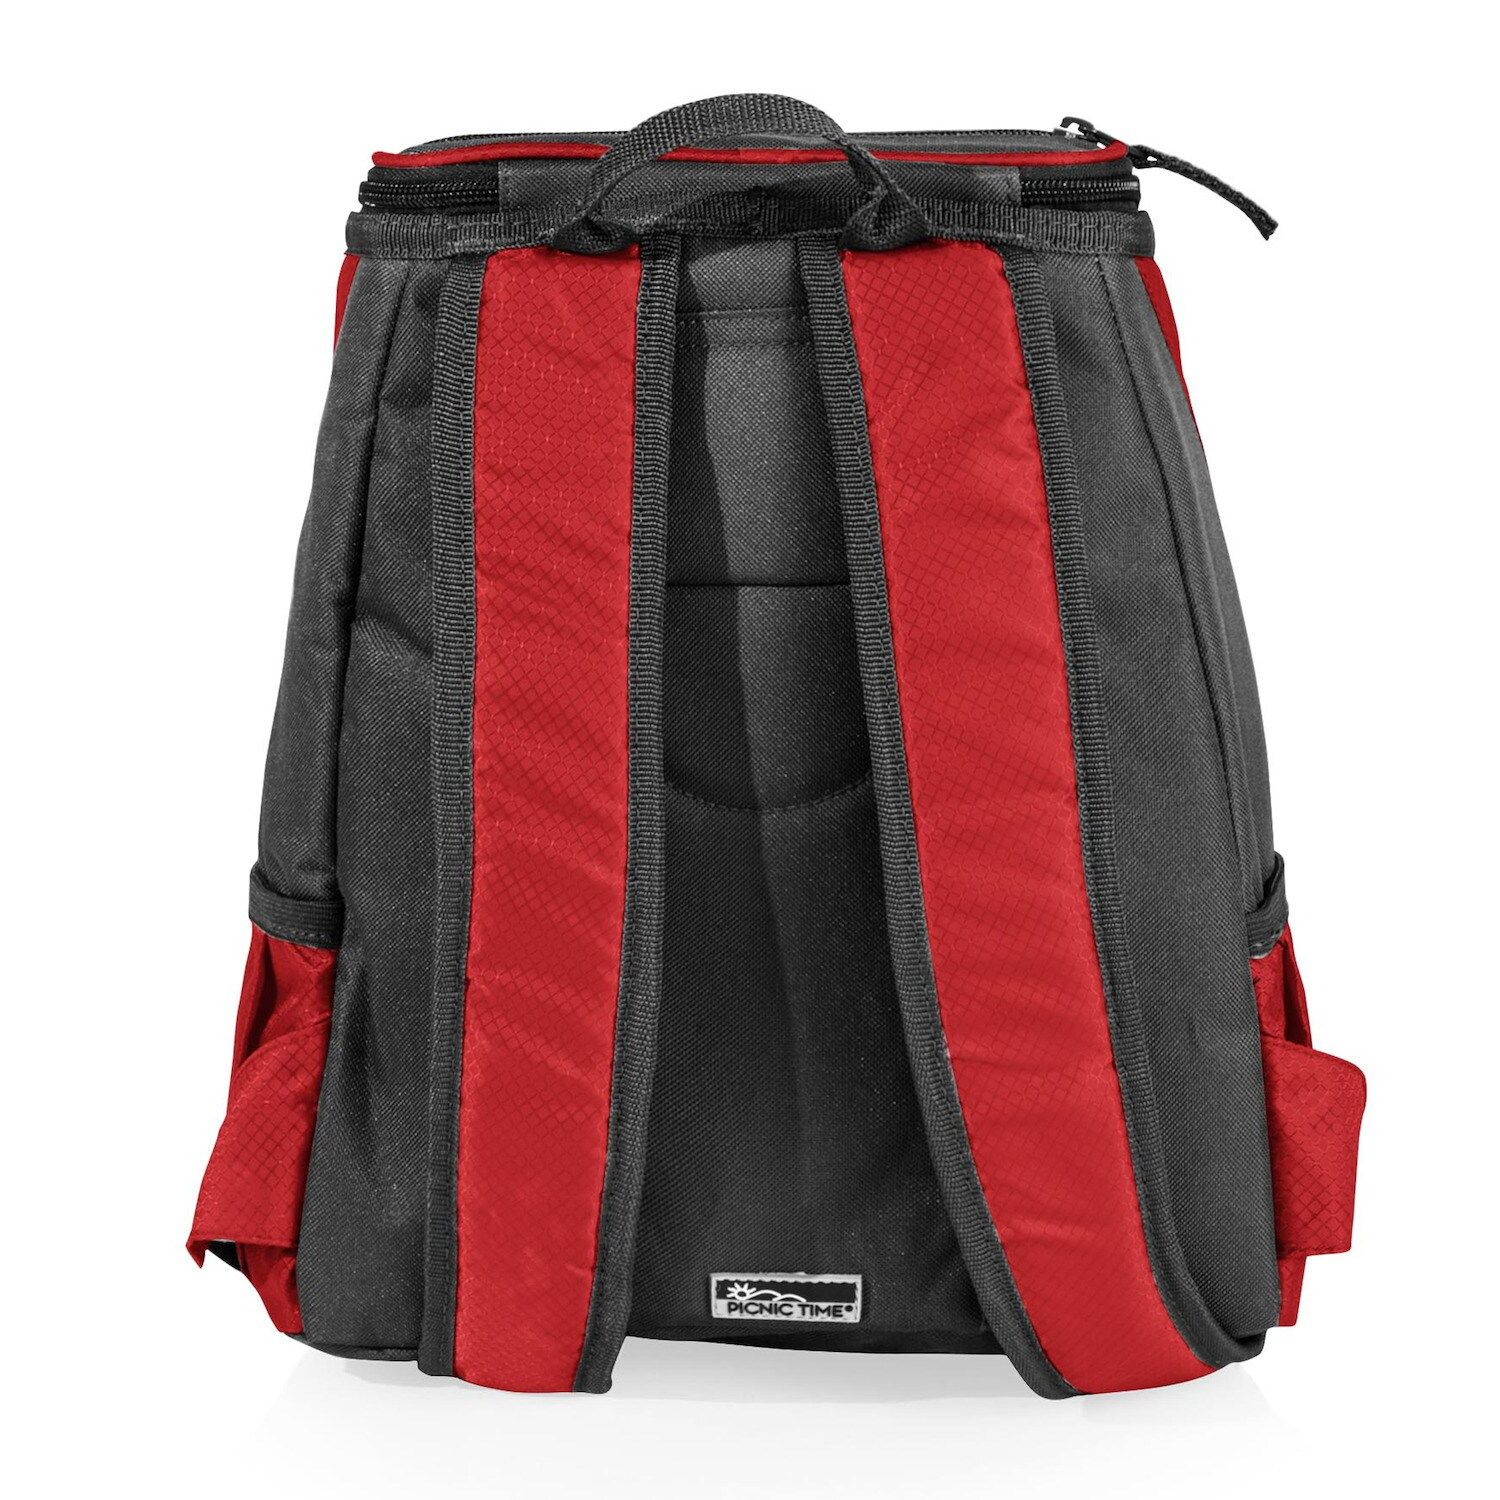 Disney S The Incredibles Mr Incredible Ptx Cooler Backpack By Picnic Time In 2020 Cool Backpacks Picnic Time Picnic Backpack